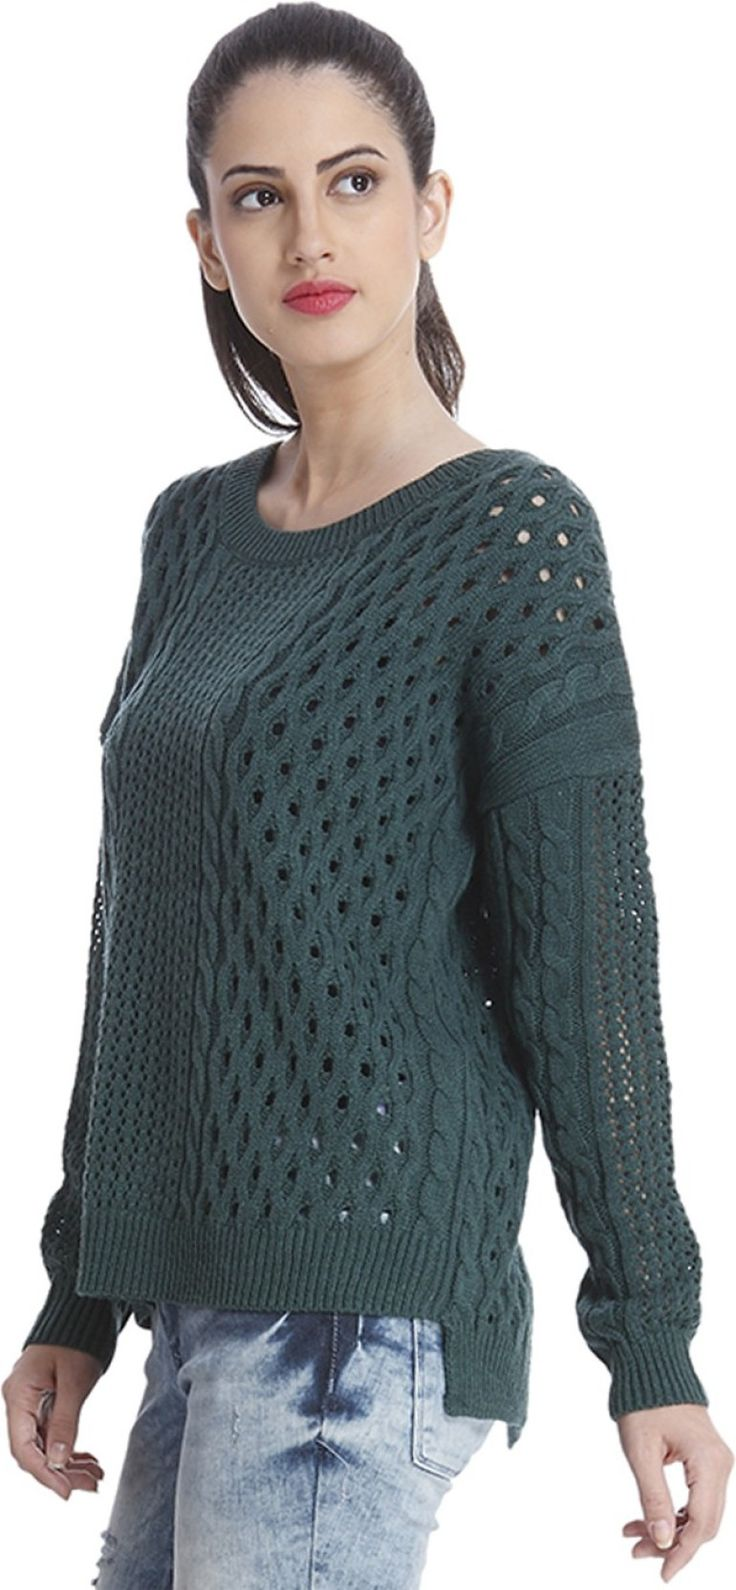 Only Round Neck Solid Women's Pullover - Buy June Bug Only Round Neck Solid Women's Pullover Online at Best Prices in India | Flipkart.com